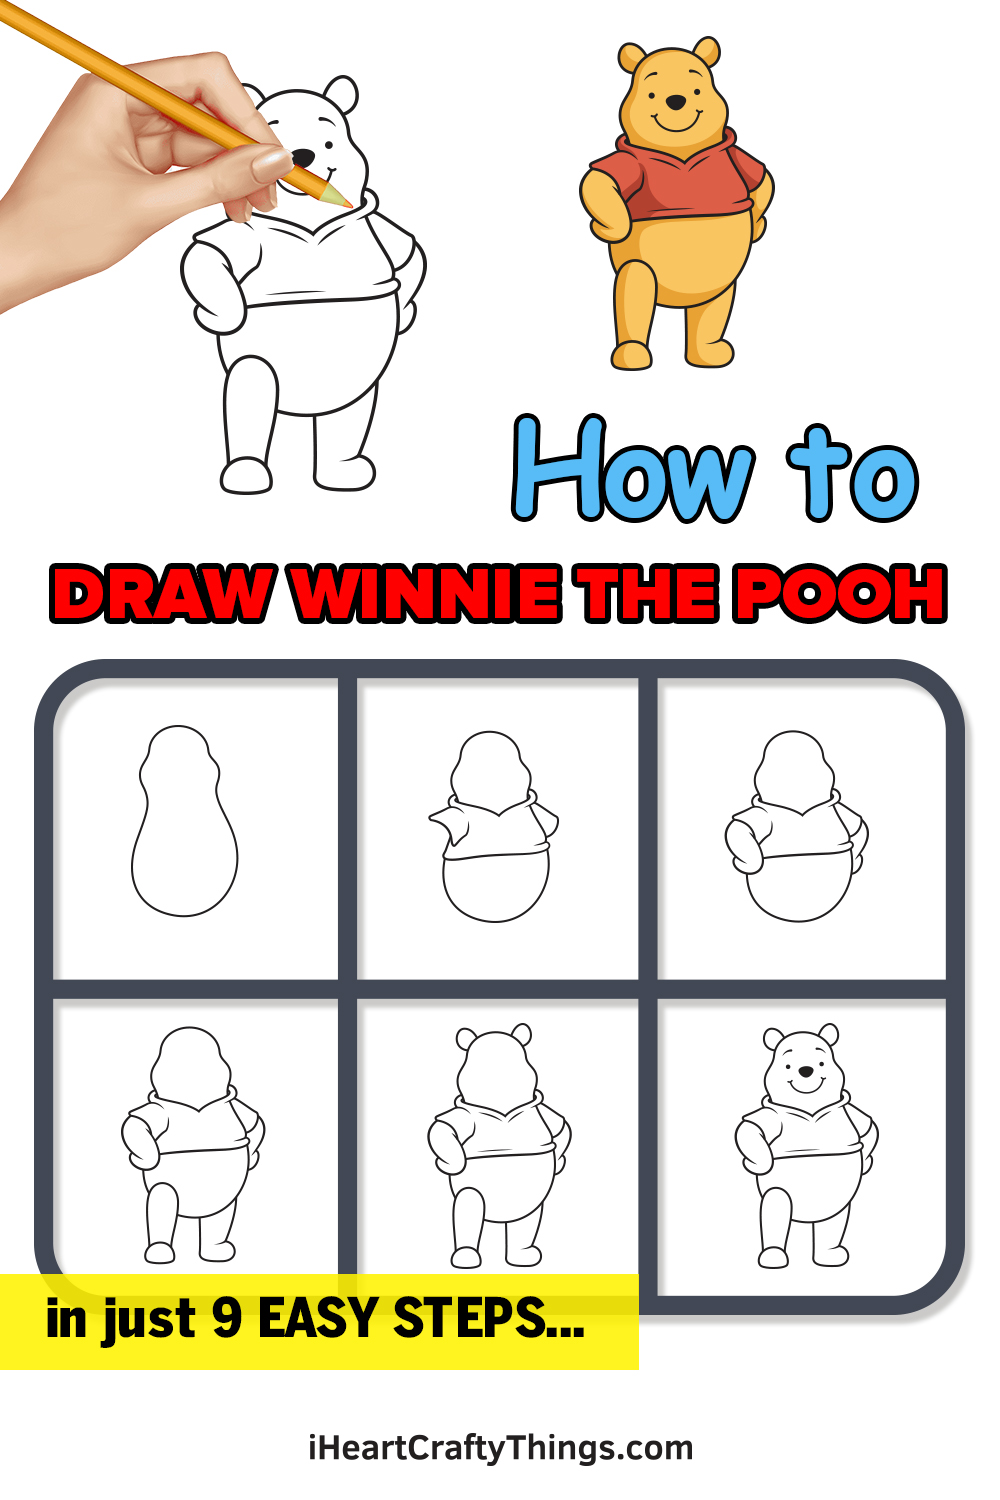 how to draw winnie the pooh in 9 easy steps